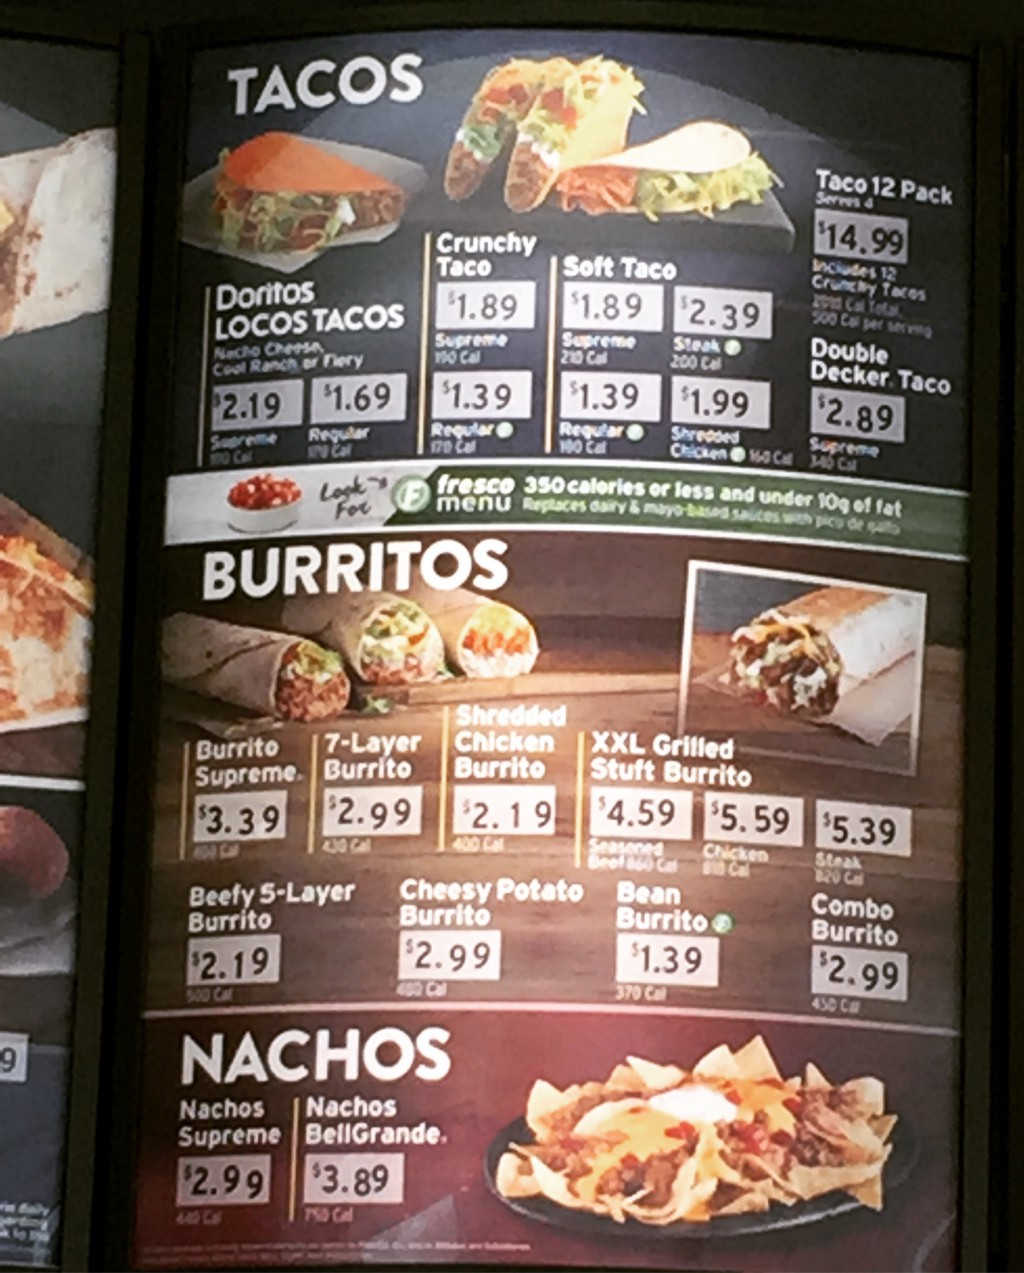 here's what taco bell's low-key healthy revolution tastes like - mel